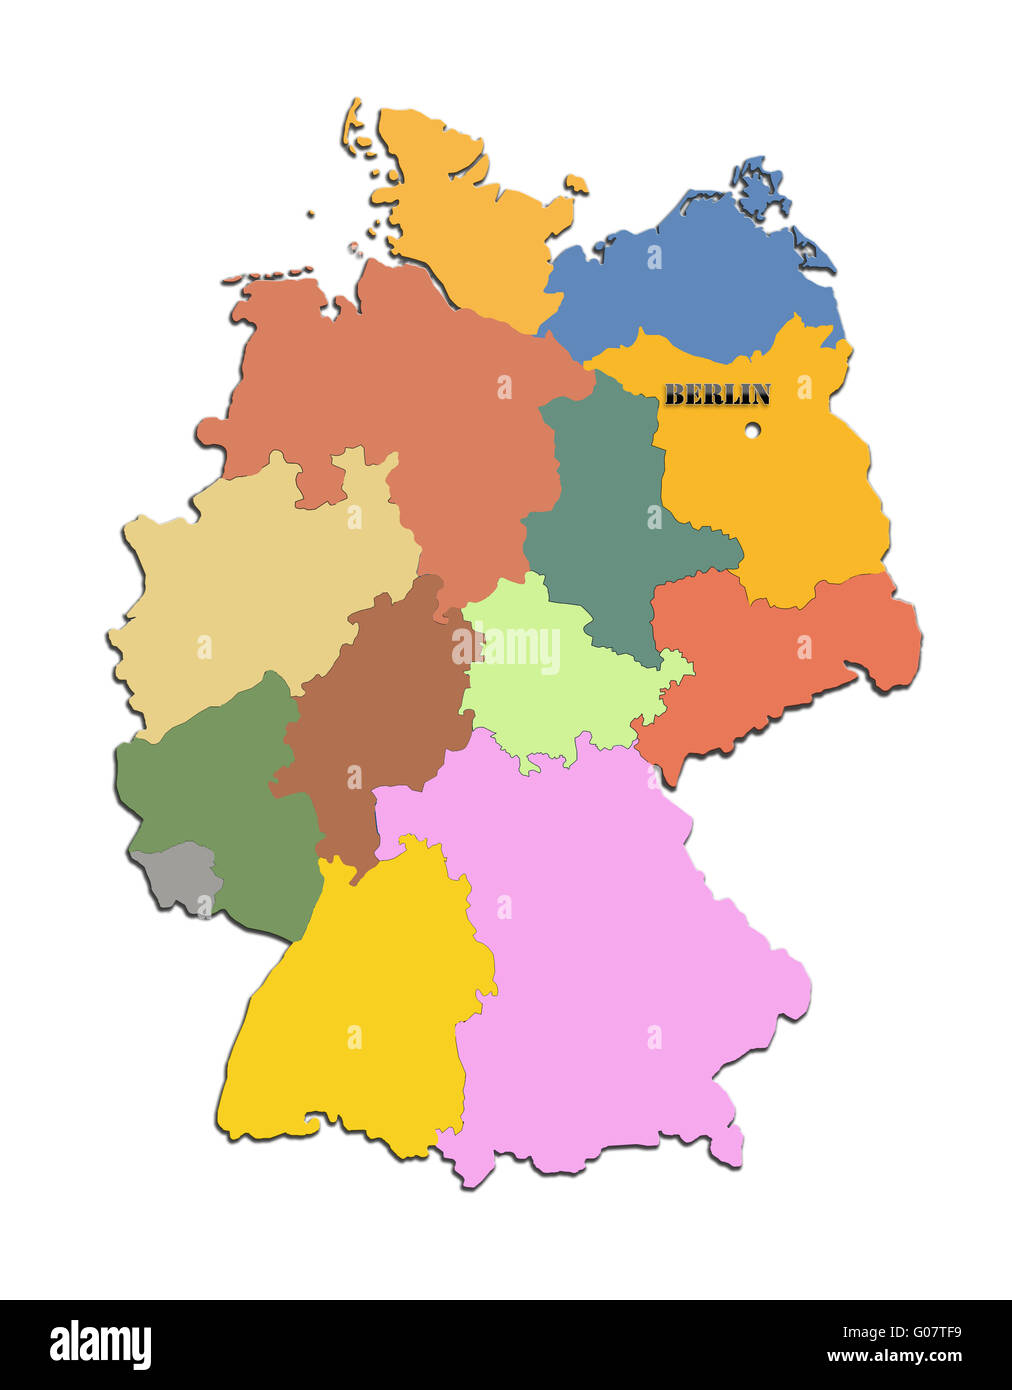 Colored silhouette of the map of Germany with regi - Stock Image